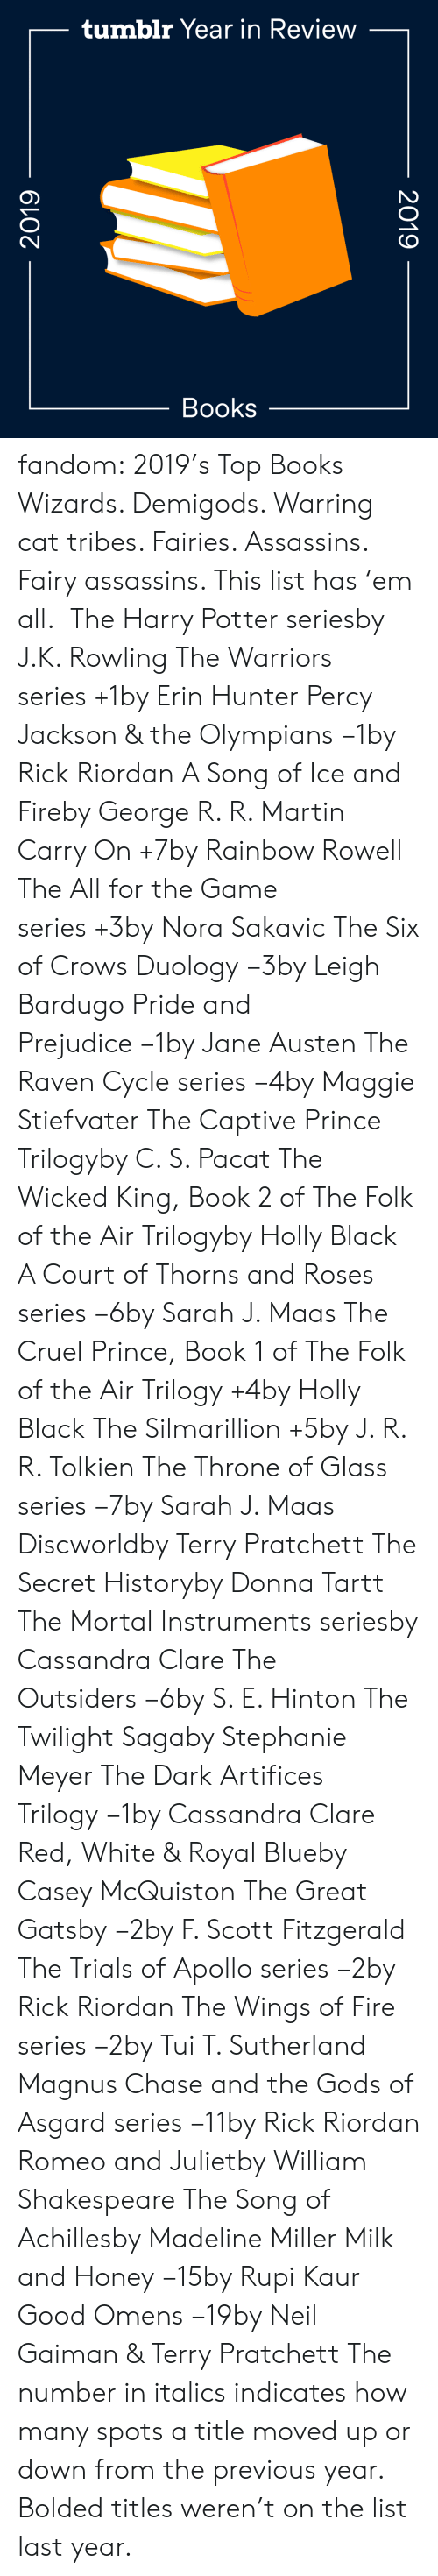 Moved: tumblr Year in Review  Books  2019  2019 fandom:  2019's Top Books  Wizards. Demigods. Warring cat tribes. Fairies. Assassins. Fairy assassins. This list has 'em all.   The Harry Potter seriesby J.K. Rowling  The Warriors series +1by Erin Hunter  Percy Jackson & the Olympians −1by Rick Riordan  A Song of Ice and Fireby George R. R. Martin  Carry On +7by Rainbow Rowell  The All for the Game series +3by Nora Sakavic  The Six of Crows Duology −3by Leigh Bardugo  Pride and Prejudice −1by Jane Austen  The Raven Cycle series −4by Maggie Stiefvater  The Captive Prince Trilogyby C. S. Pacat  The Wicked King, Book 2 of The Folk of the Air Trilogyby Holly Black  A Court of Thorns and Roses series −6by Sarah J. Maas  The Cruel Prince, Book 1 of The Folk of the Air Trilogy +4by Holly Black  The Silmarillion +5by J. R. R. Tolkien  The Throne of Glass series −7by Sarah J. Maas  Discworldby Terry Pratchett  The Secret Historyby Donna Tartt  The Mortal Instruments seriesby Cassandra Clare  The Outsiders −6by S. E. Hinton  The Twilight Sagaby Stephanie Meyer  The Dark Artifices Trilogy −1by Cassandra Clare  Red, White & Royal Blueby Casey McQuiston  The Great Gatsby −2by F. Scott Fitzgerald  The Trials of Apollo series −2by Rick Riordan  The Wings of Fire series −2by Tui T. Sutherland  Magnus Chase and the Gods of Asgard series −11by Rick Riordan  Romeo and Julietby William Shakespeare  The Song of Achillesby Madeline Miller  Milk and Honey −15by Rupi Kaur  Good Omens −19by Neil Gaiman & Terry Pratchett The number in italics indicates how many spots a title moved up or down from the previous year. Bolded titles weren't on the list last year.